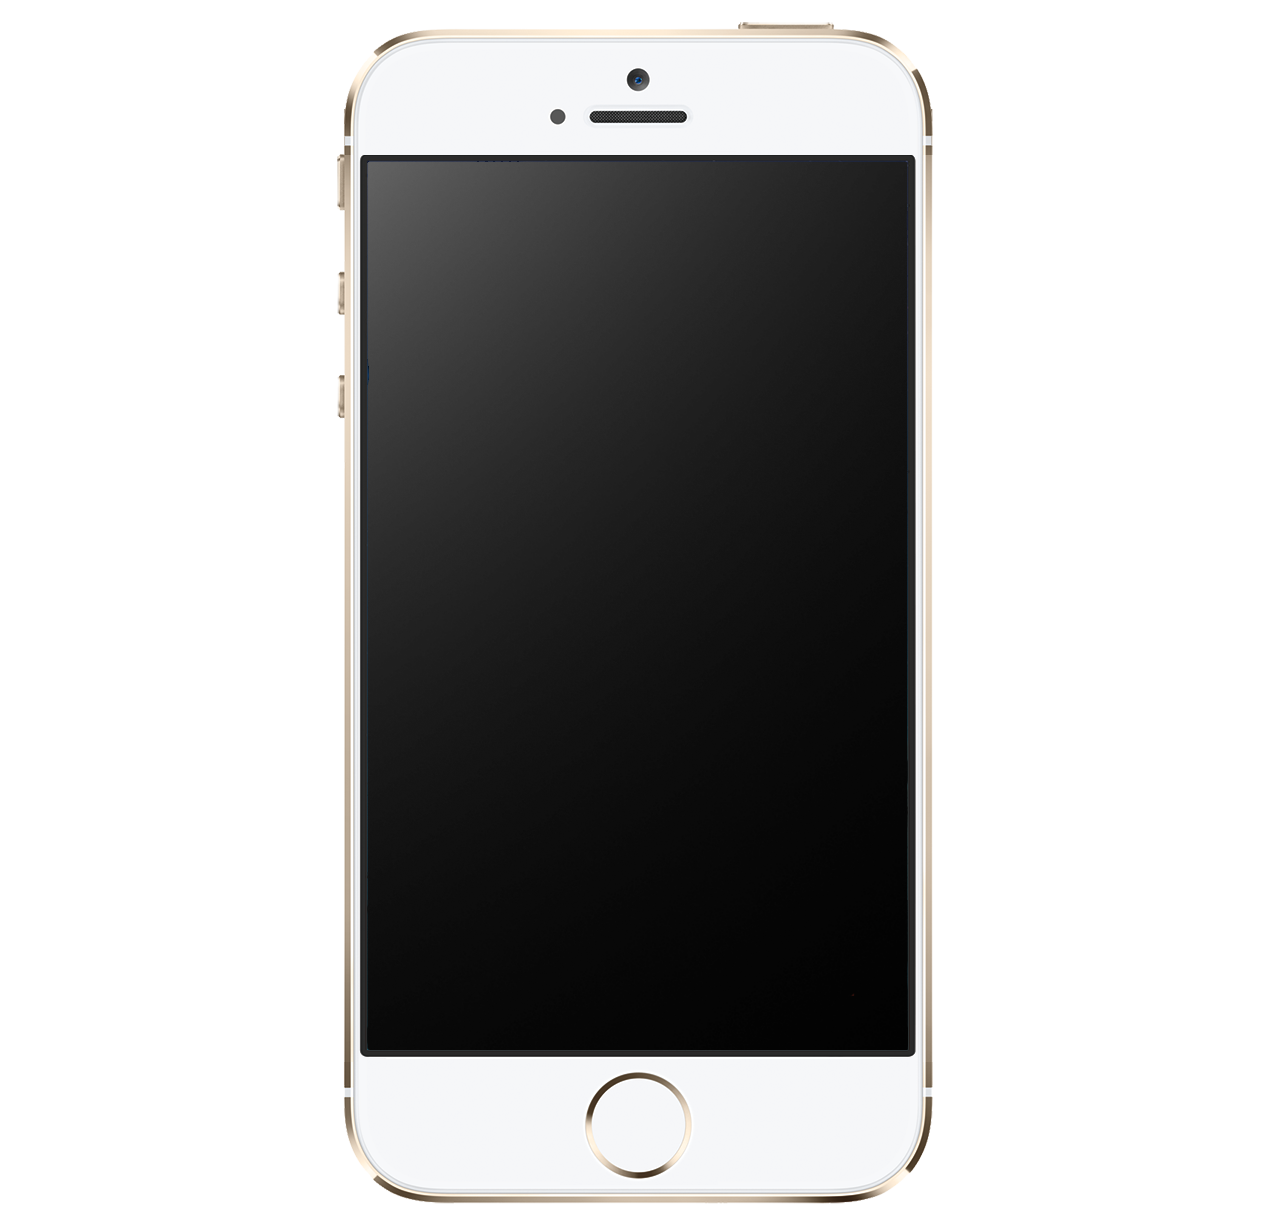 Iphone blank screen png. Apple images free download